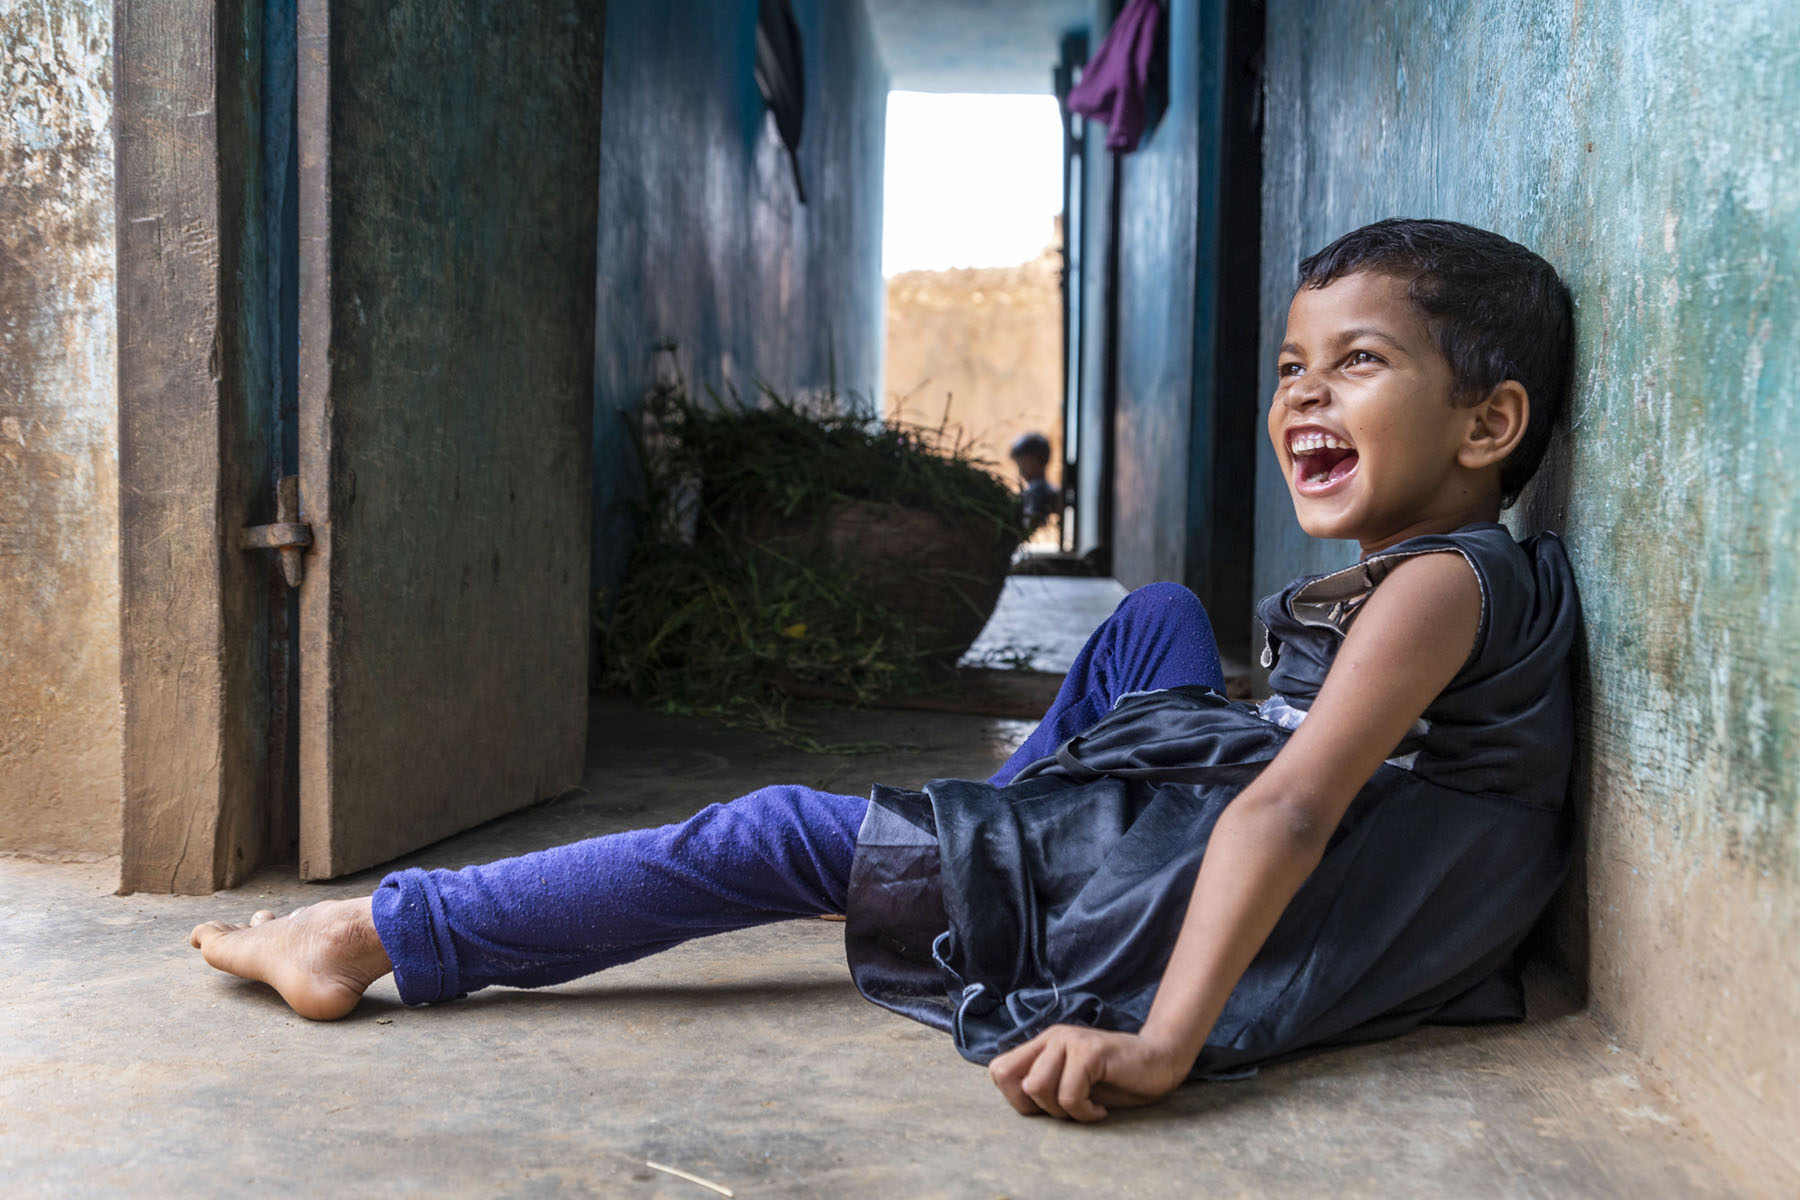 Manisha Kumari Mahto (8) dressed in an indigo churidar and navy blue frock sits on the floor, leaning against a wall painted blue. She has close-cropped hair and her mouth is wide open in laughter.  She has stretched out her left leg and her right knee is bent and raised up.